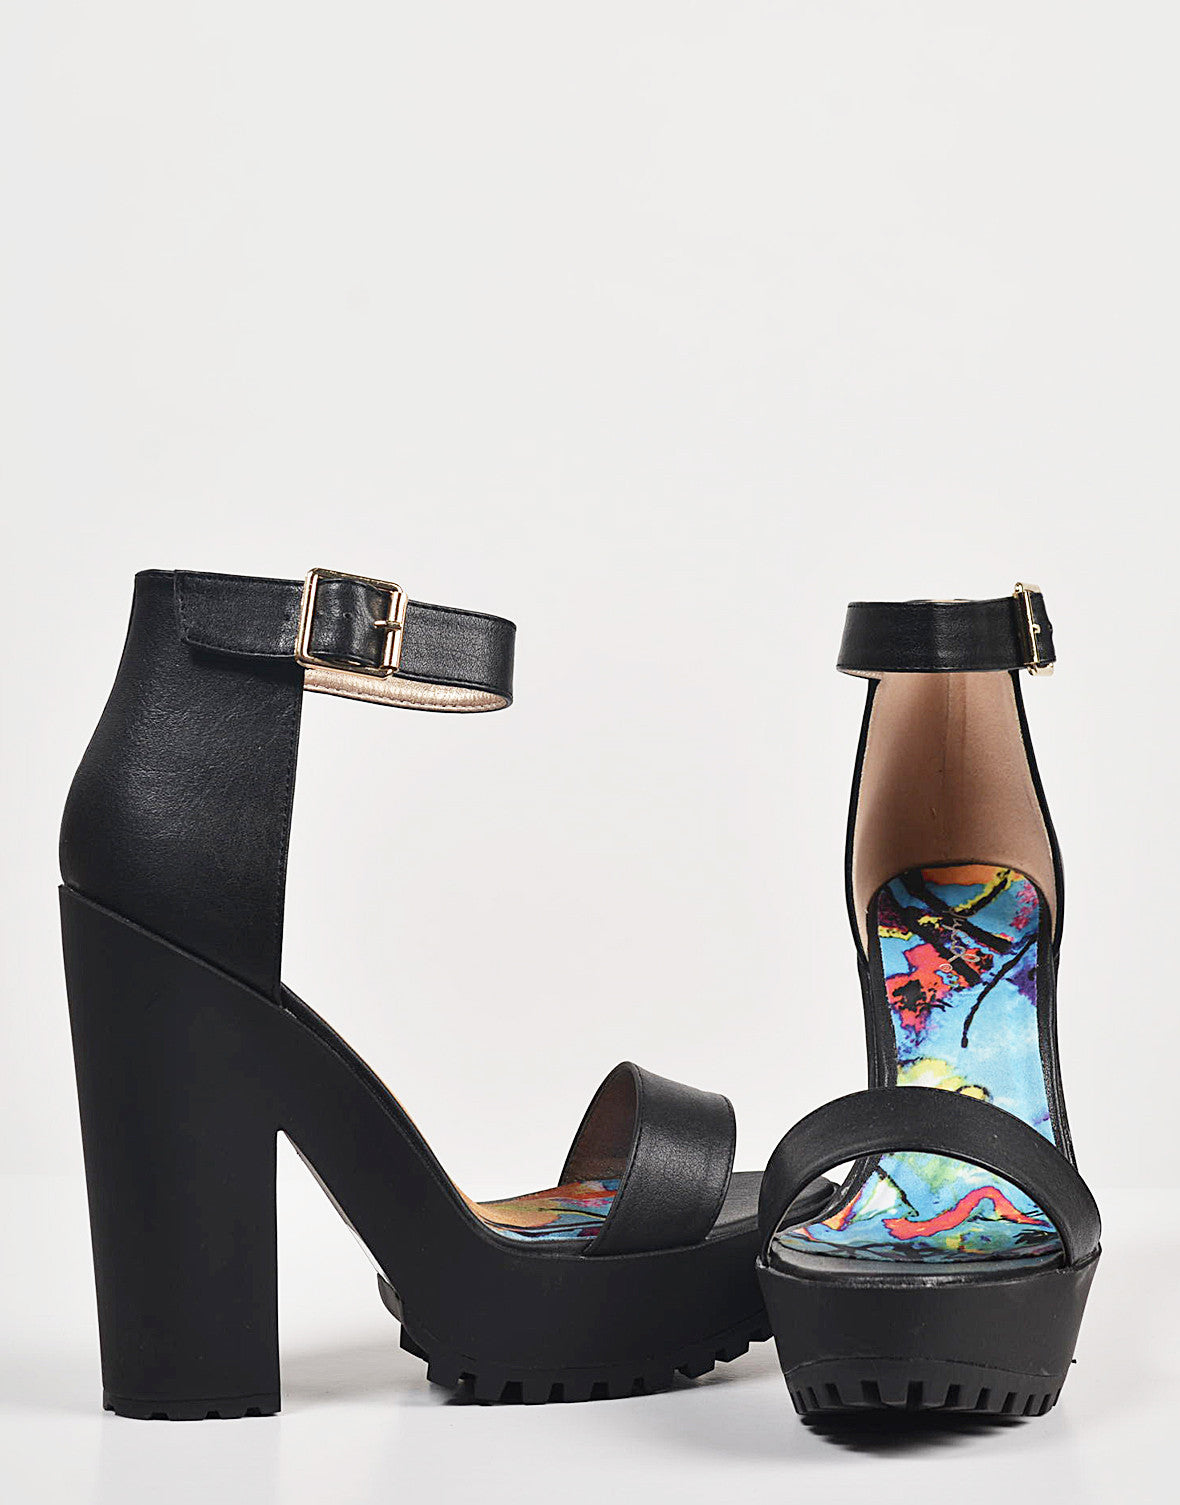 Detail of Chunky Platform Ankle Strapped Heels